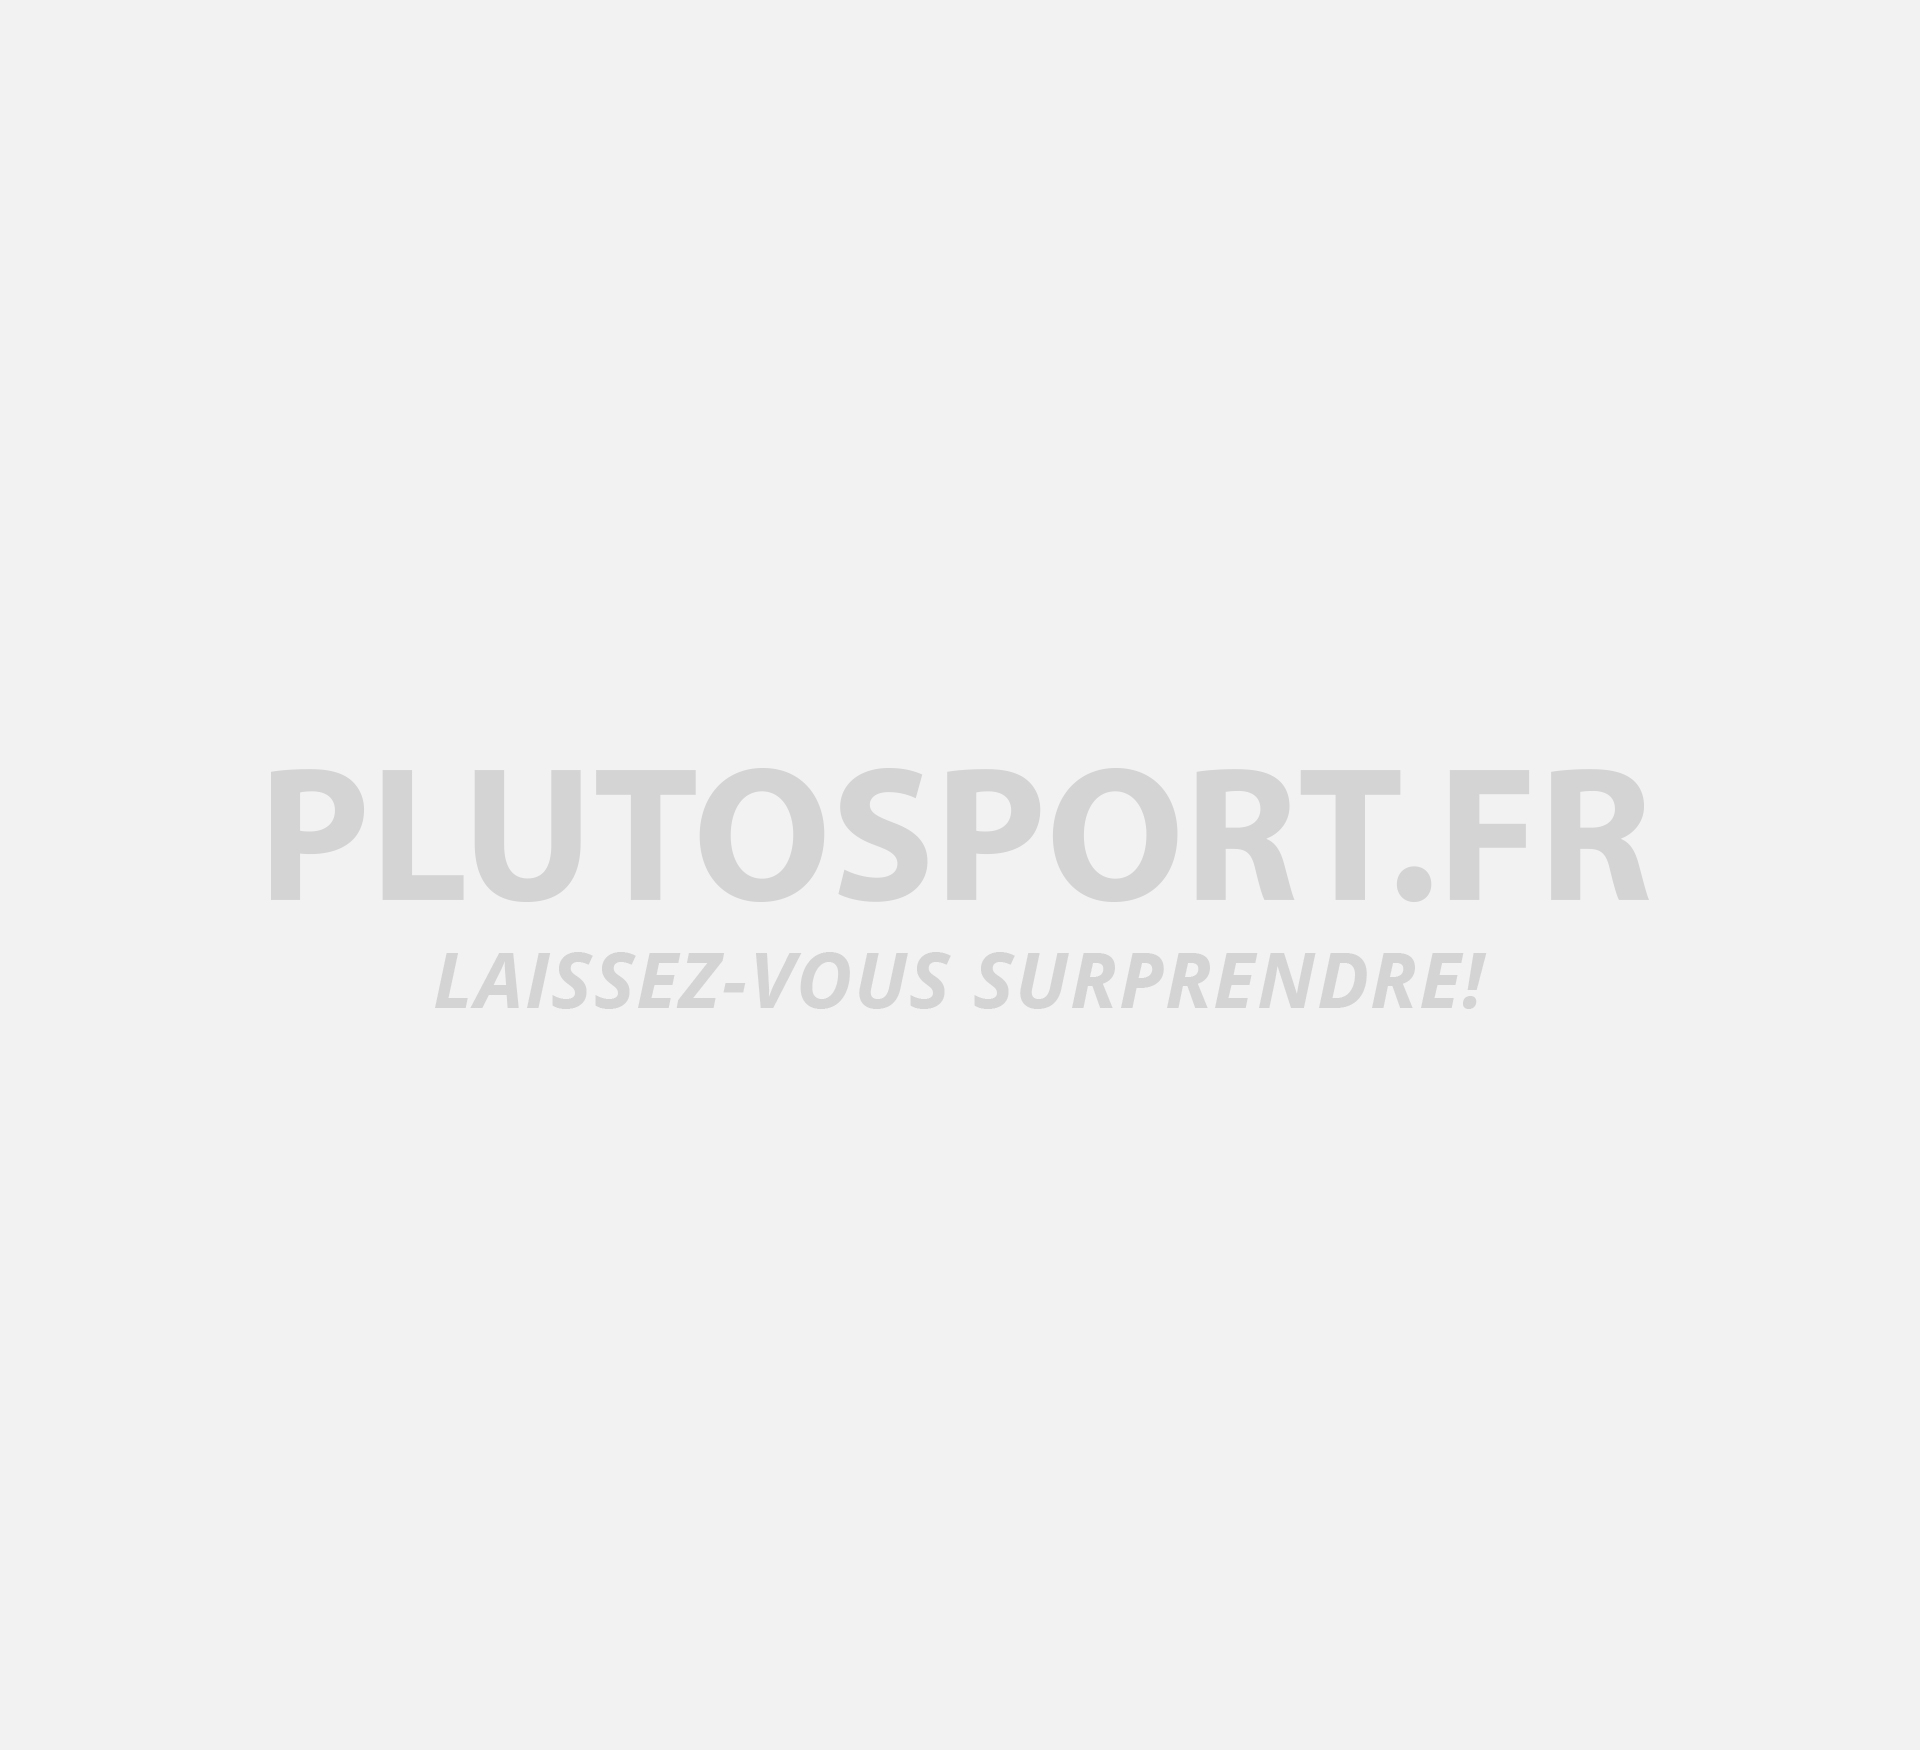 Adidas Core 18, Sweat-shirt à capuche pour enfants